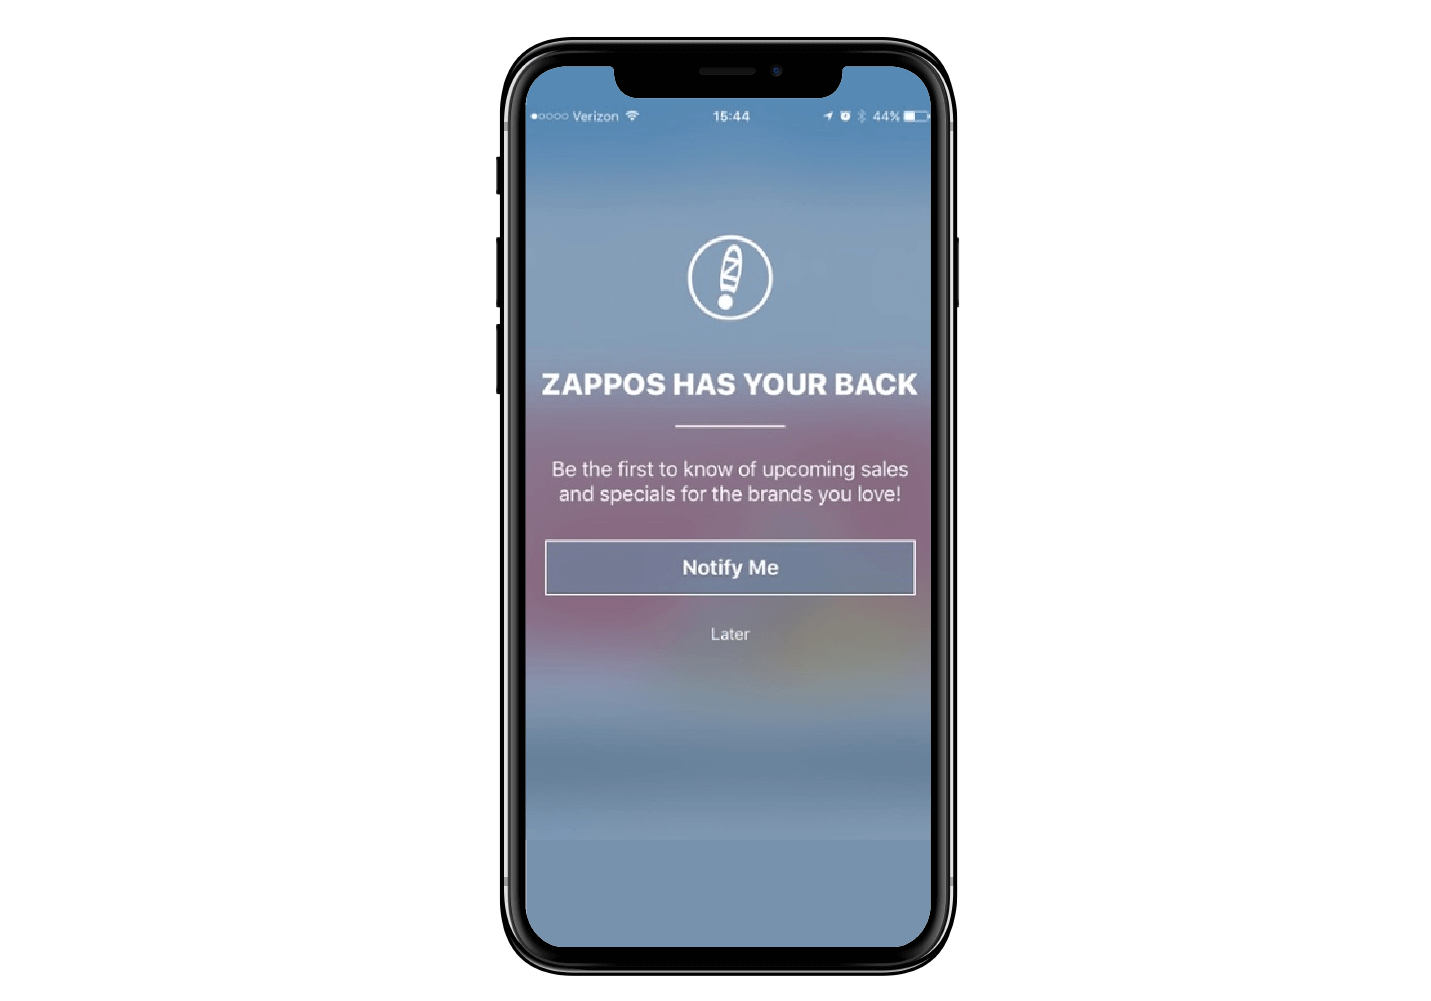 Zappos - Opt-in for Push Notifications